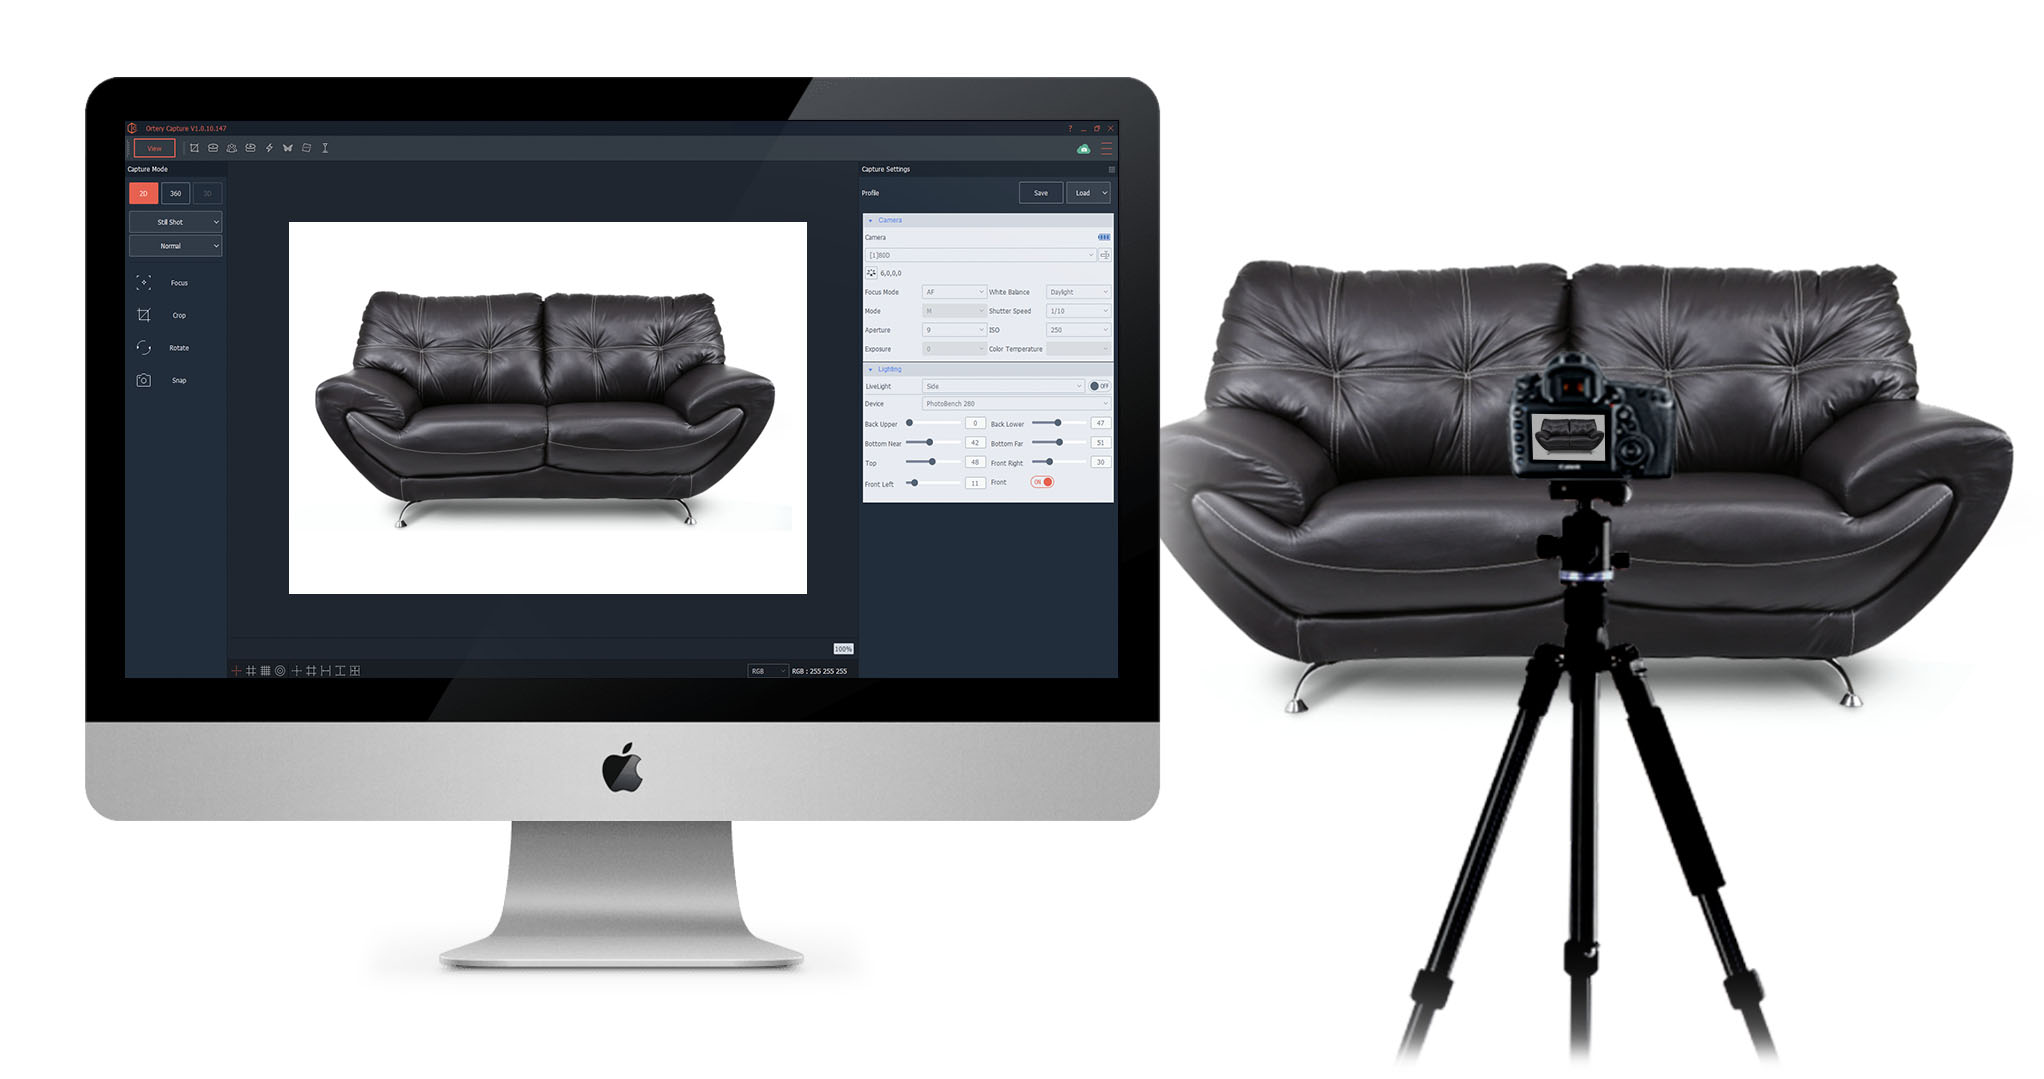 software-controlled-ortery-furniture-photography-system